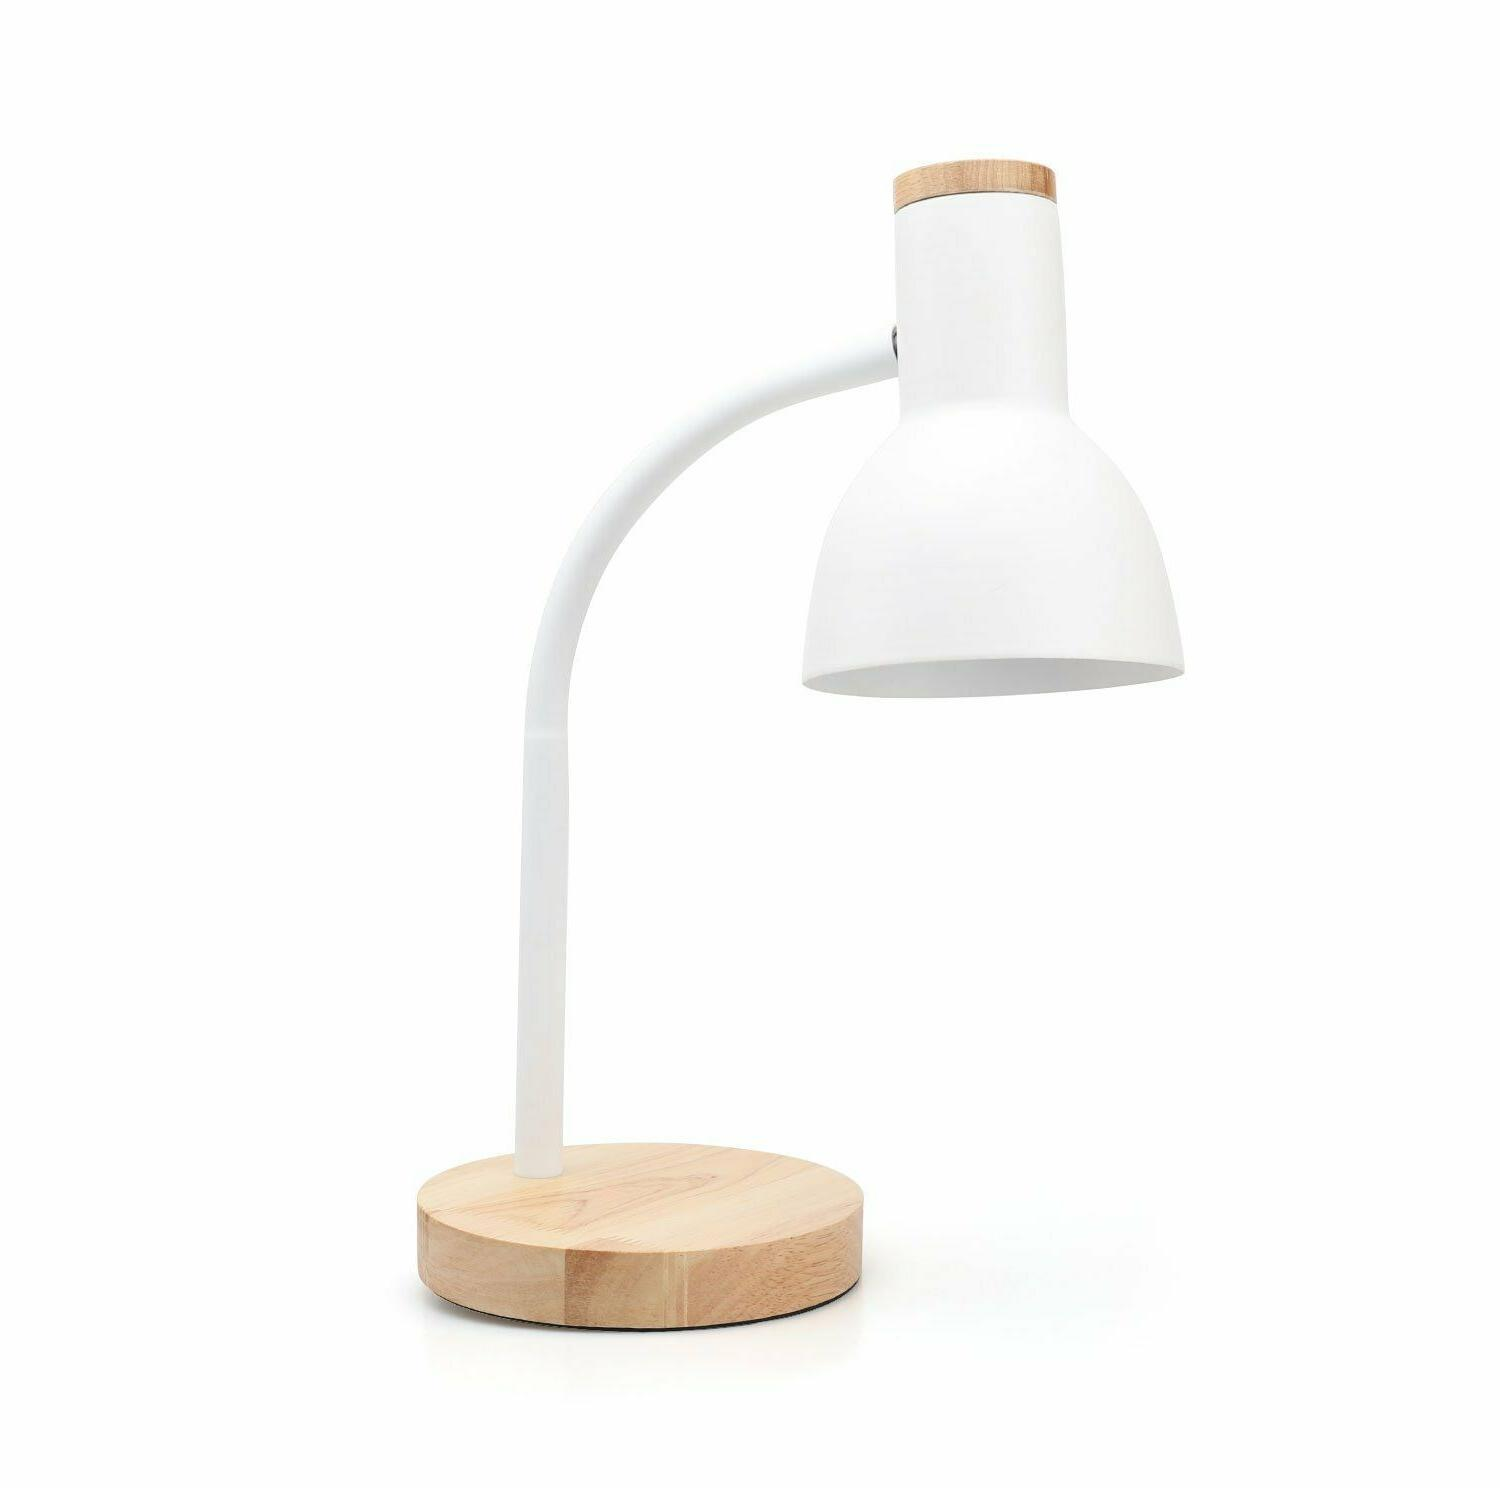 pinsoon led desk lamp with flexible goose